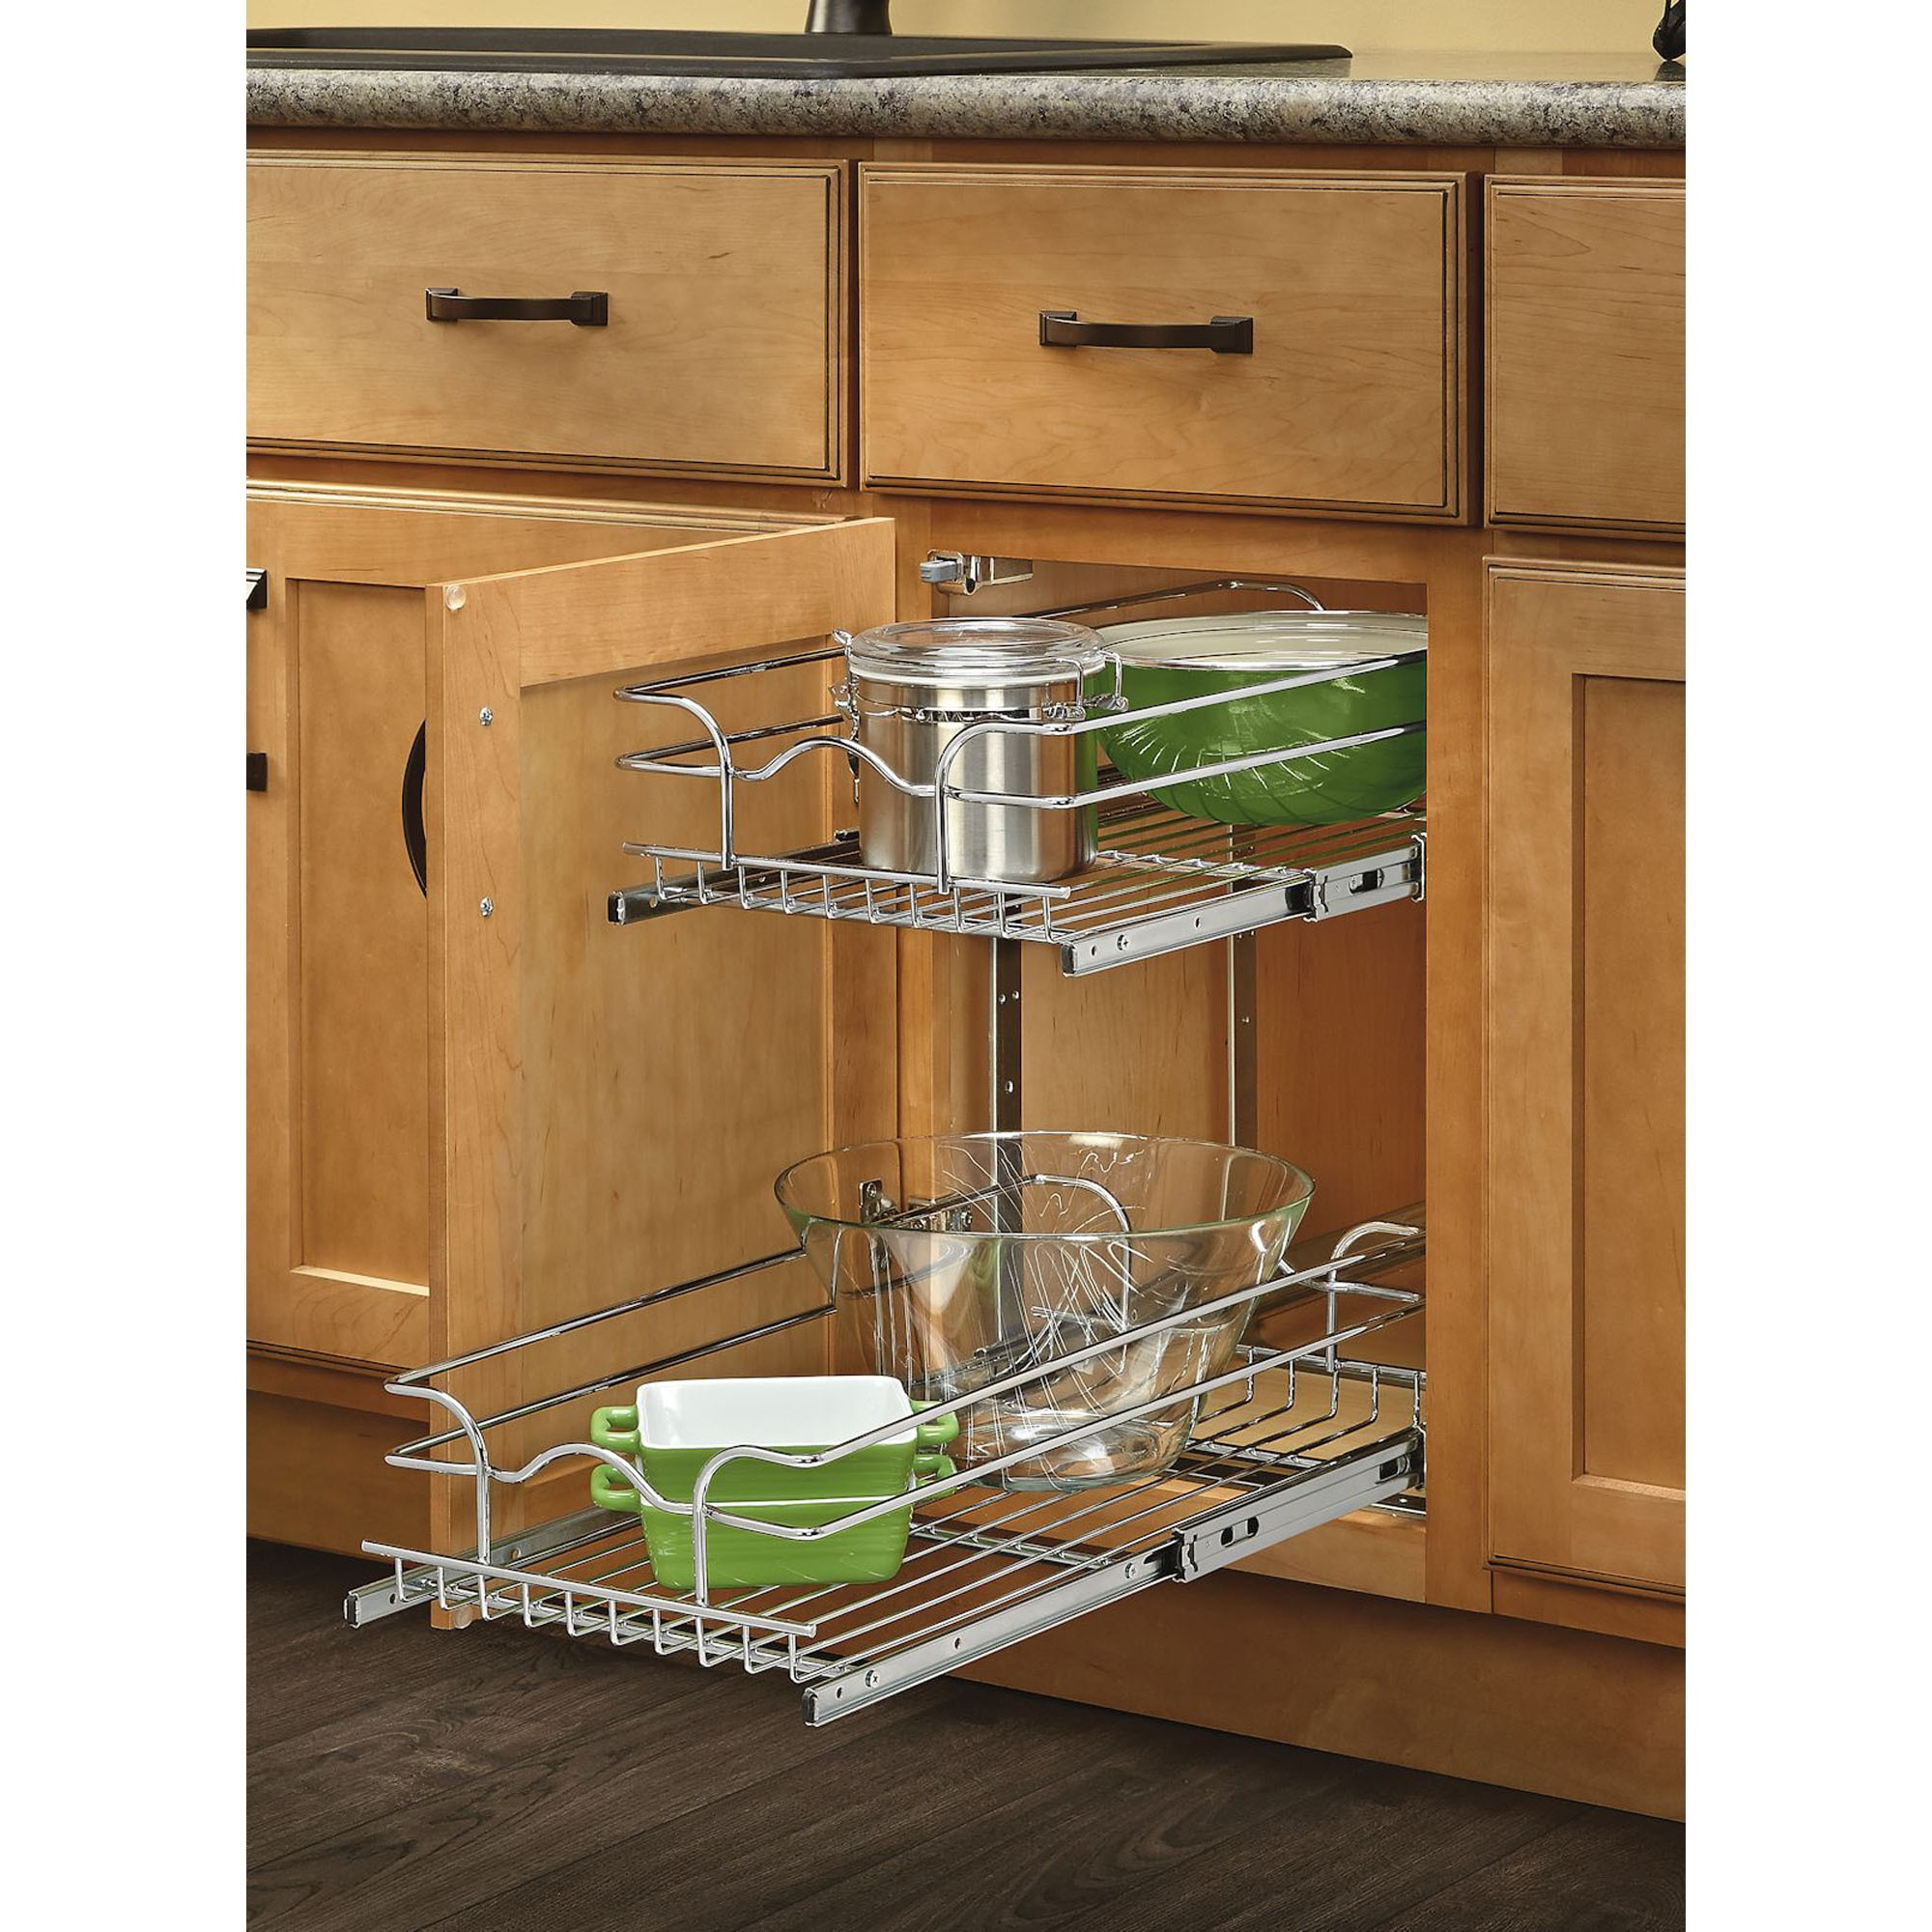 Pull Out Wire Basket Storage Two Tier Under Cabinet Organizer Chrome Finish